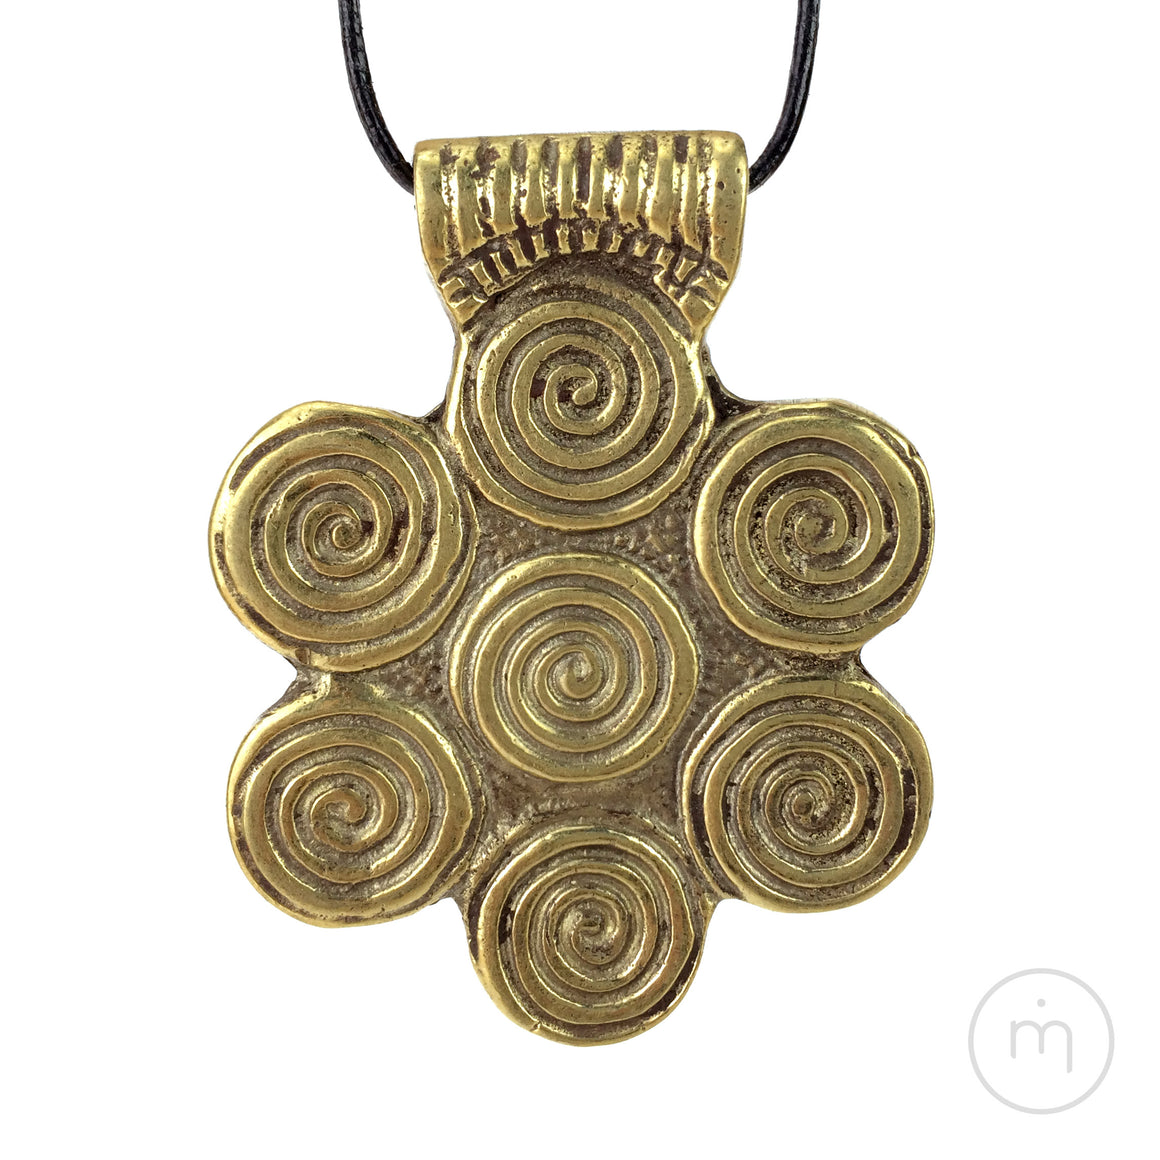 Fairtrade Nepalese 7 Chakras Brass Pendant